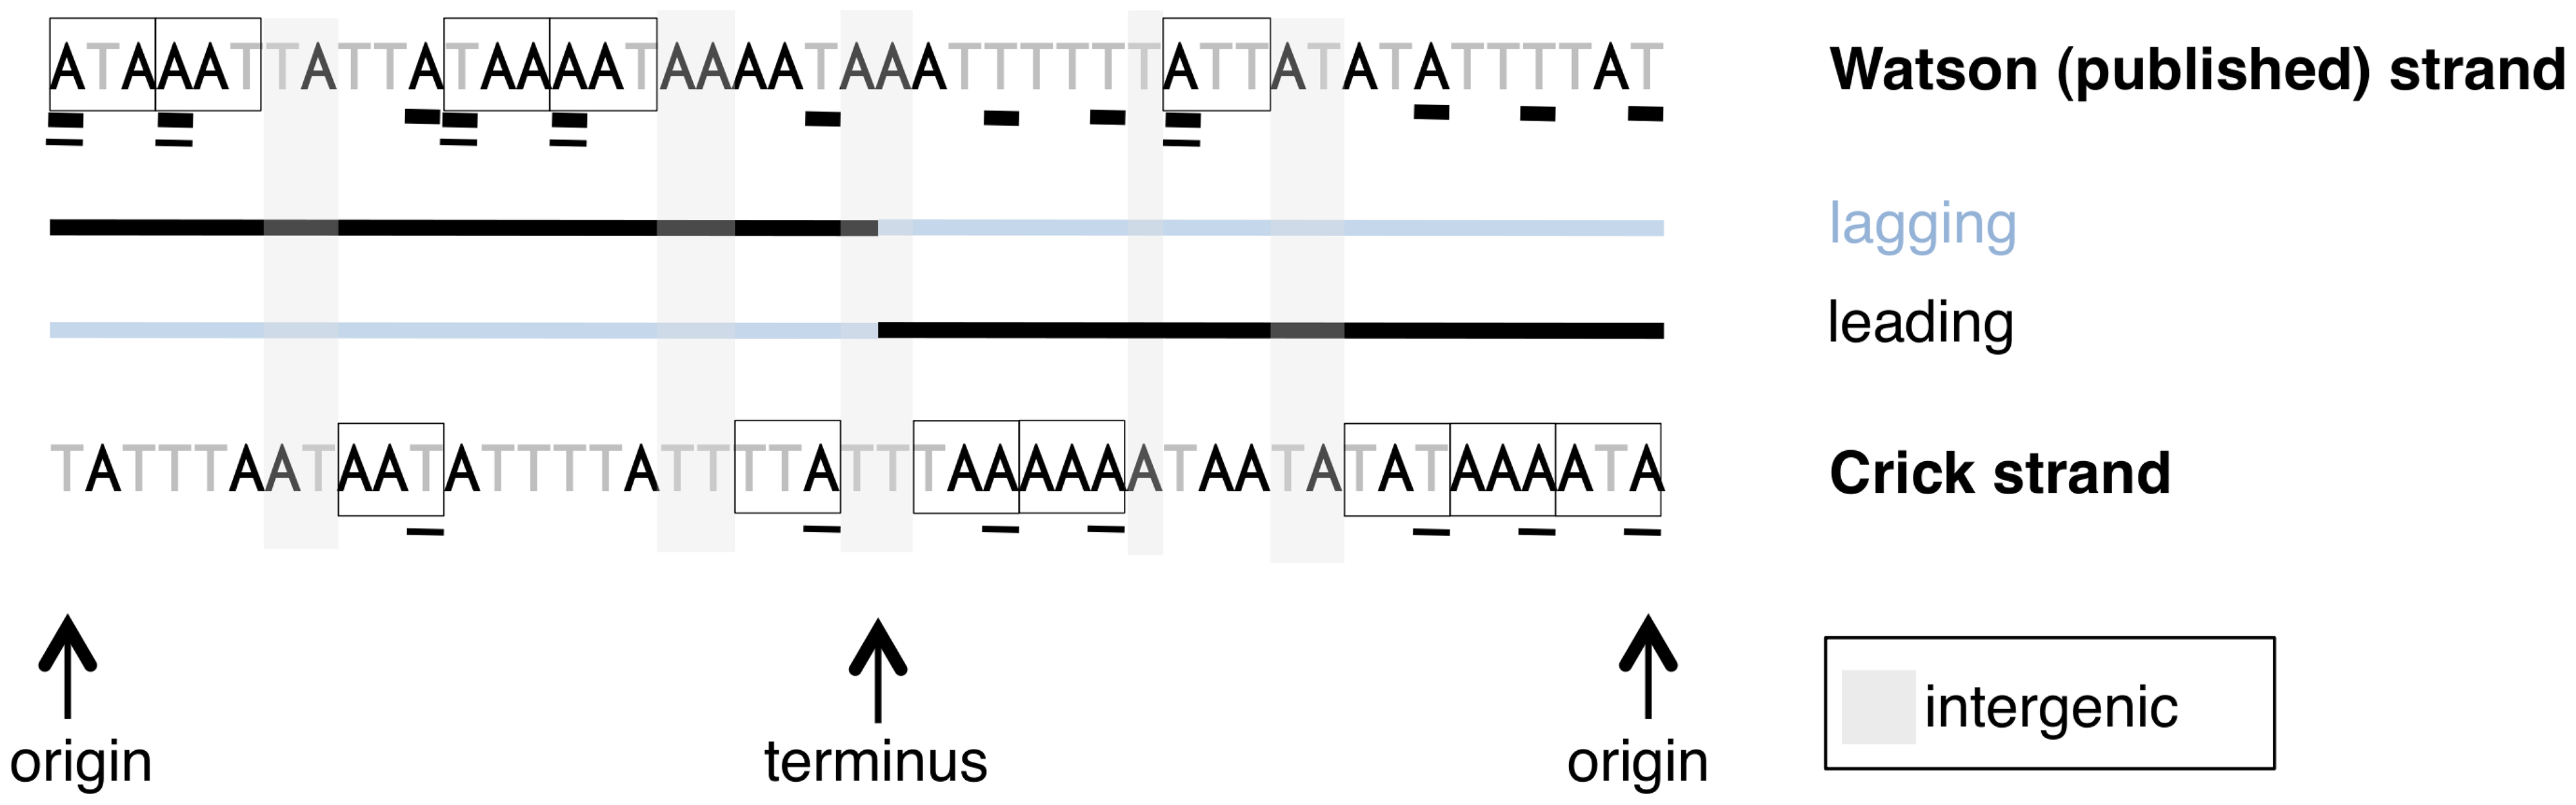 A schematic of sites used for different types of analyses in this paper.